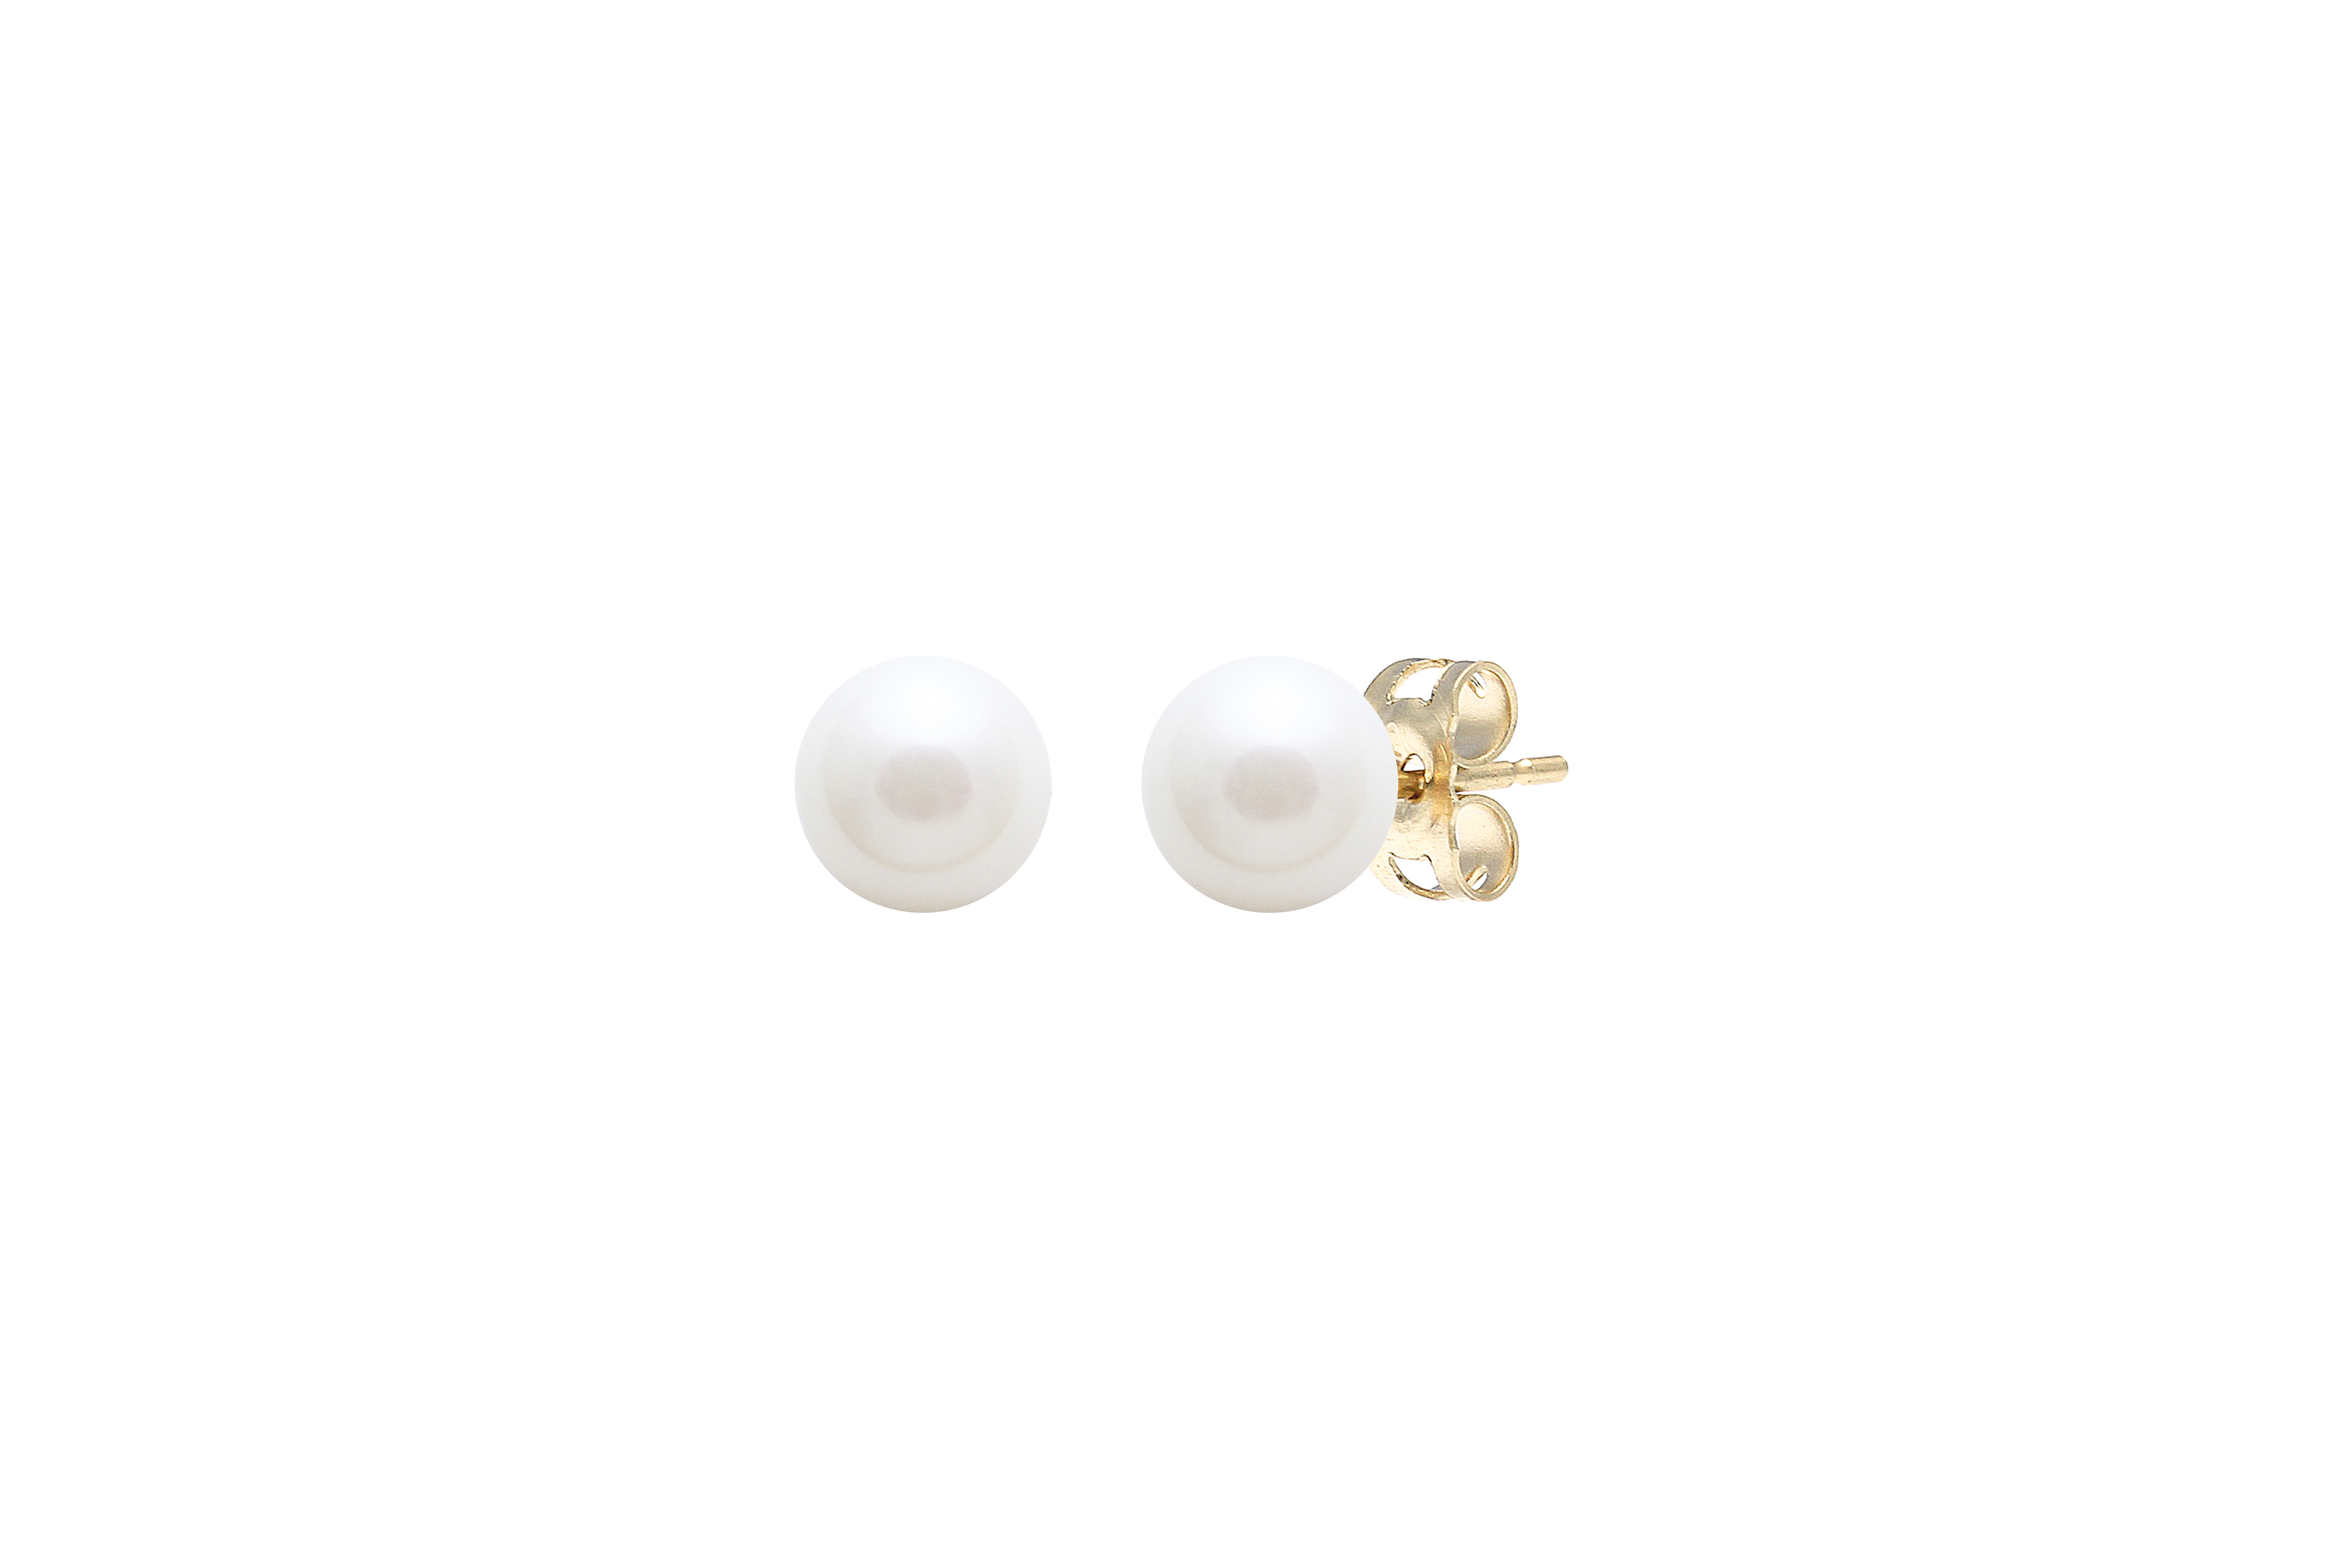 Yellow Gold 6.5-7mm Cultured River Pearl earrings